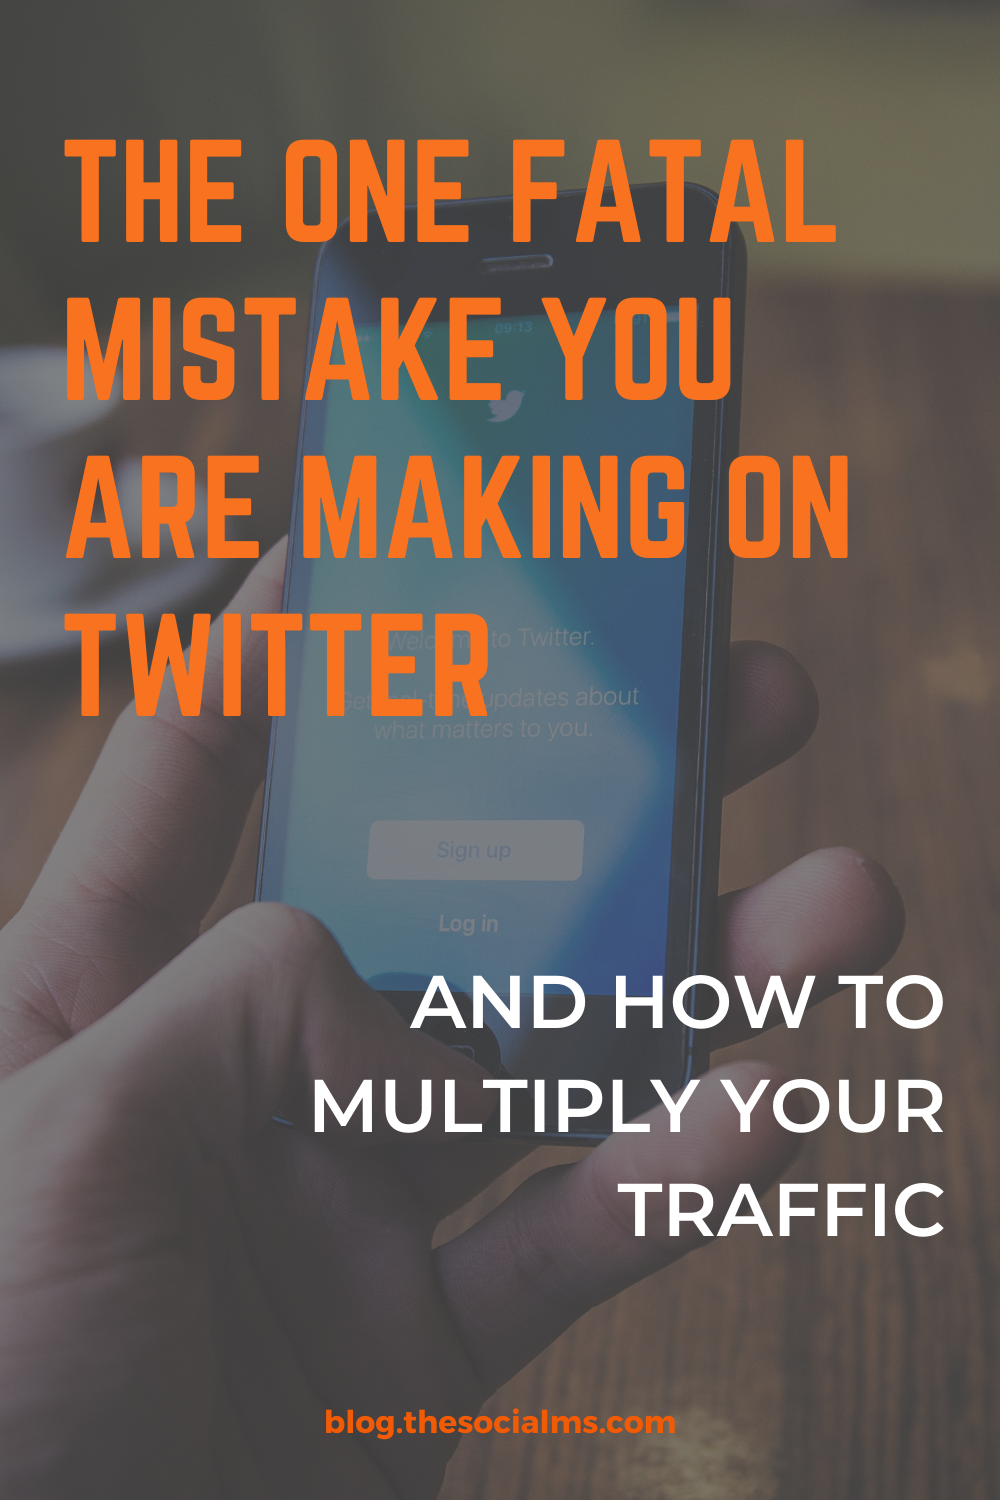 Getting traffic from Twitter is easy, right? So why aren't you seeing he traffic you hoped for and that your content deserves? Here is what you are doing totally wrong on Twitter! #twitter #twittertips #twittermarketing #twittermistakes #socialmedia #socialmediatips #socialmediamarketing